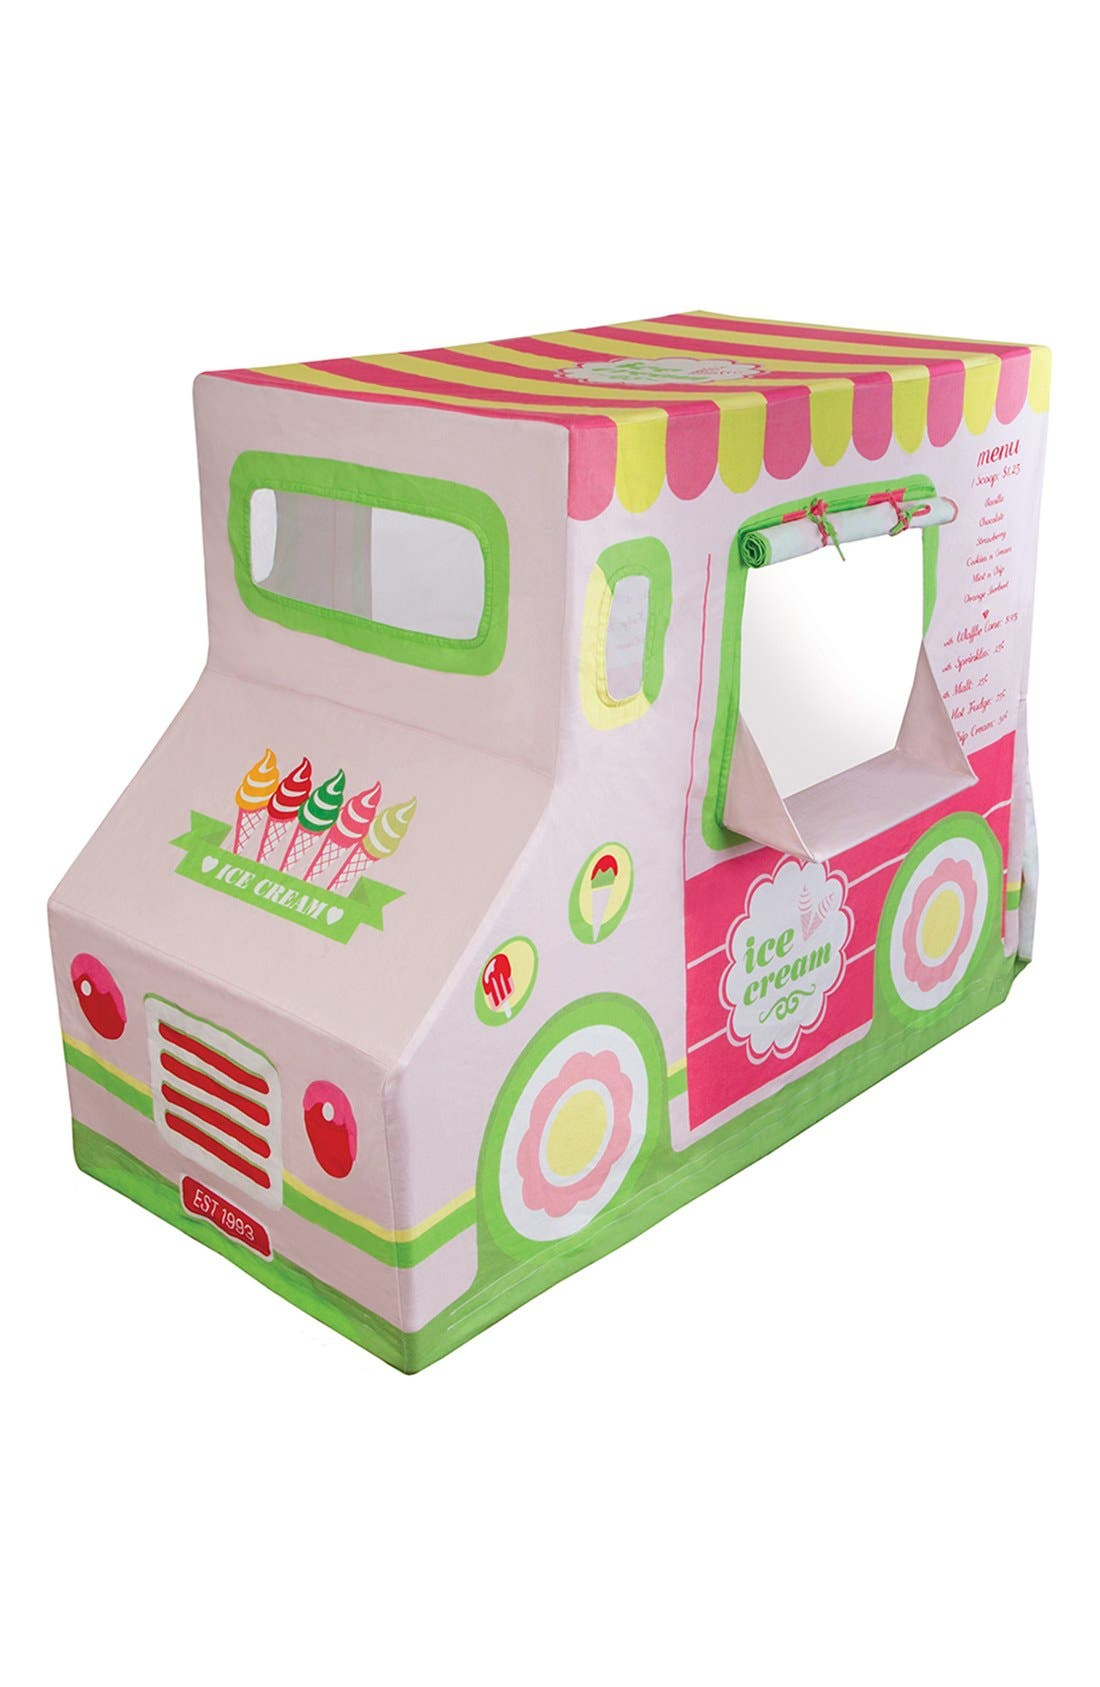 Pacific Play Tents u0027Ice Cream Trucku0027 Playhouse  sc 1 st  Nordstrom & Play Tents u0026 Teepees Kids Toy Shop | Nordstrom